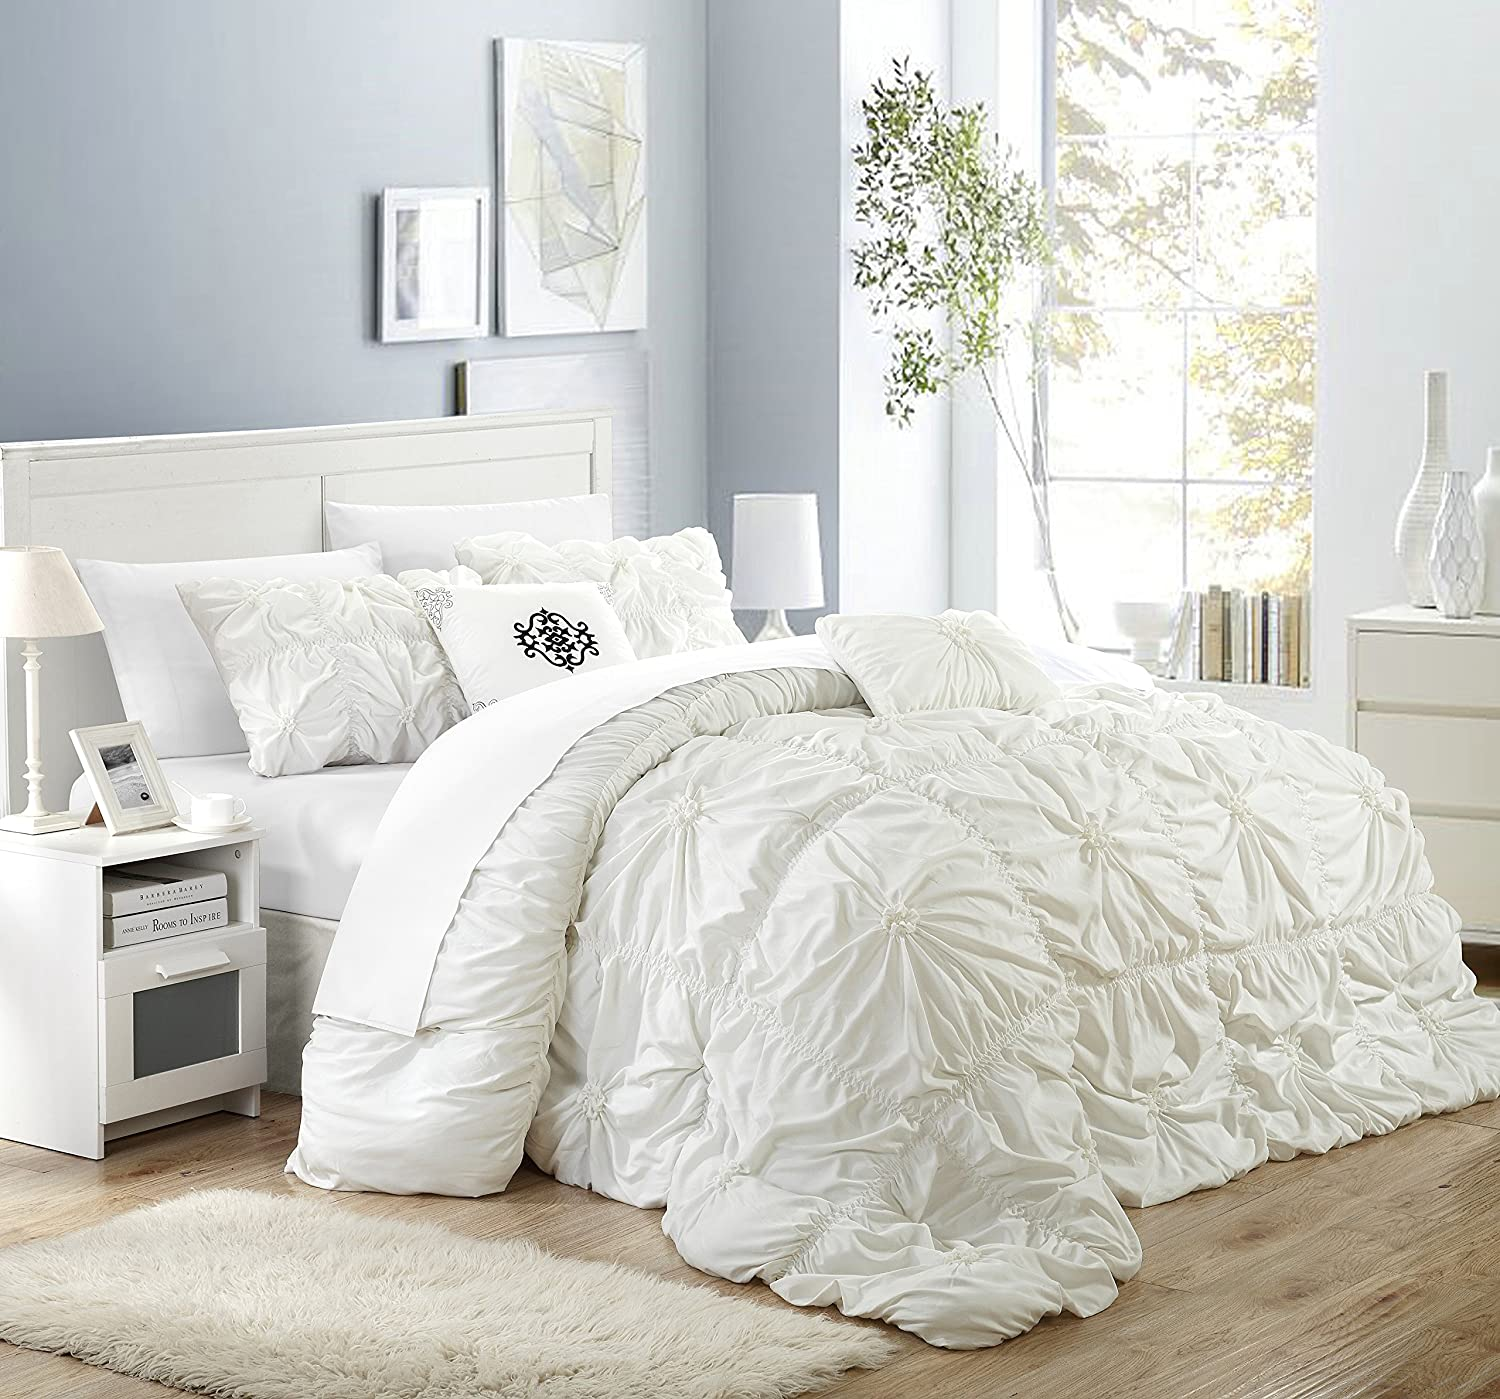 on master comforters queen sets charming king ideas about bed piece appealing bedroom comforter best beautiful bedding